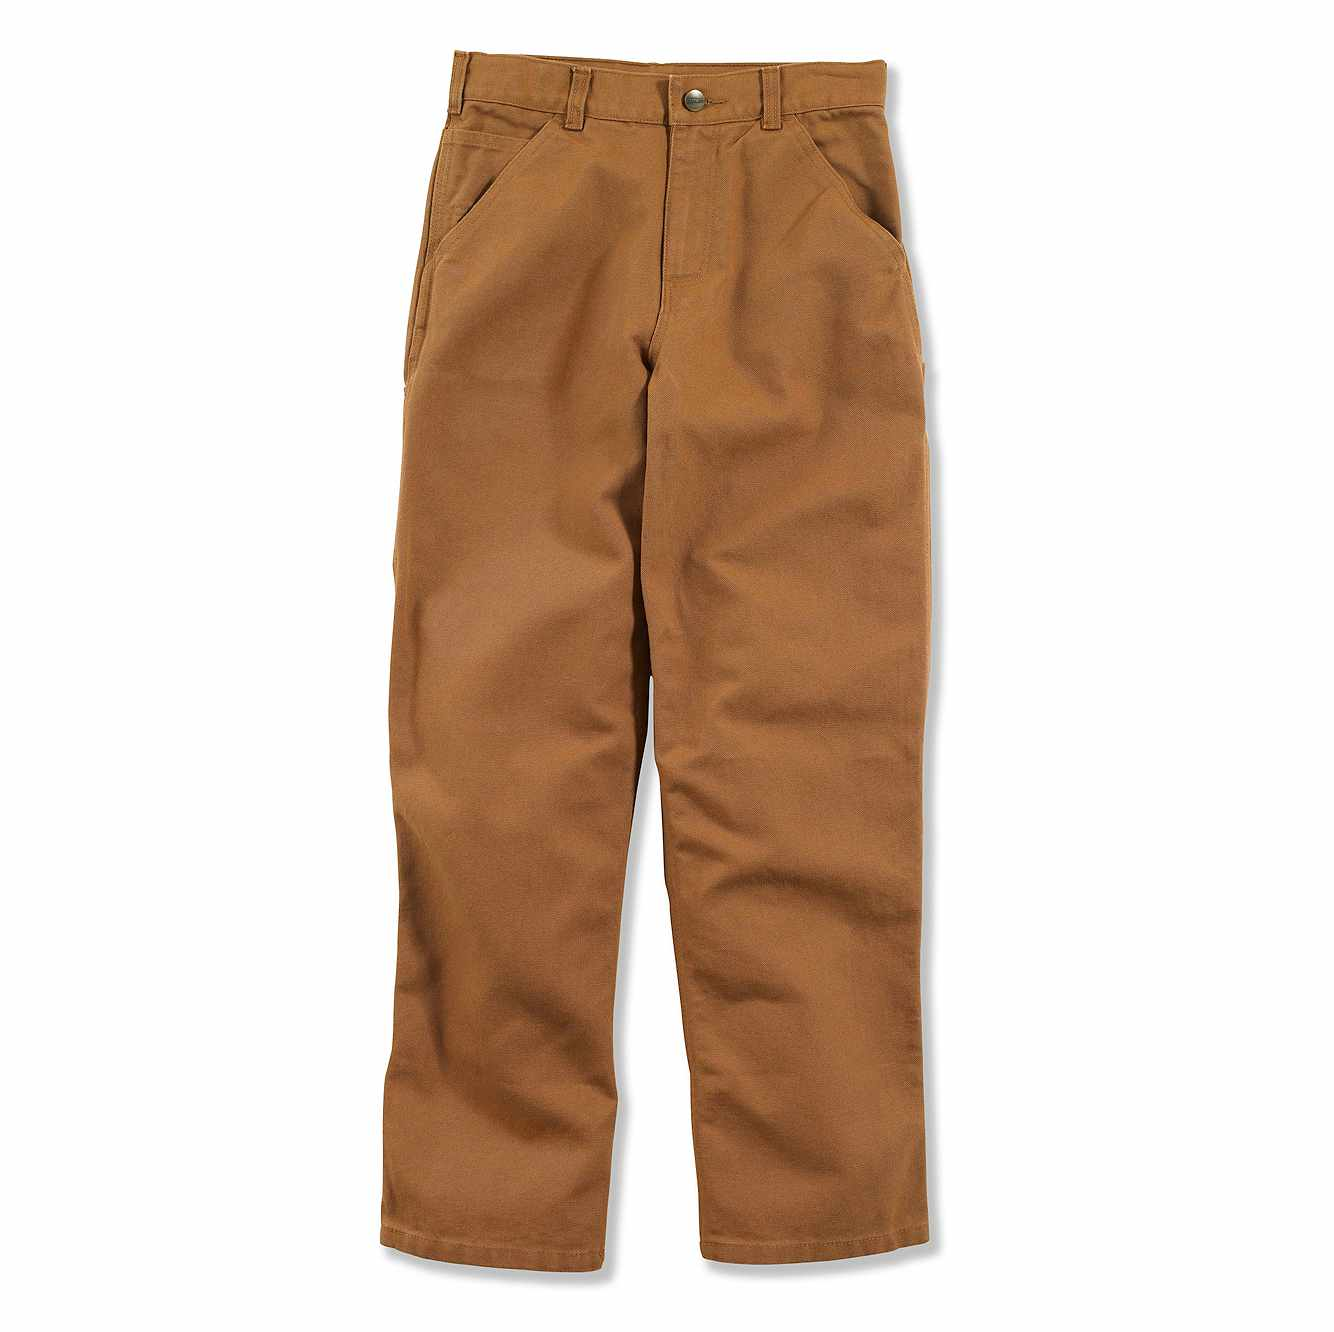 Picture of Canvas Dungaree Sizes 4-7 in Carhartt Brown